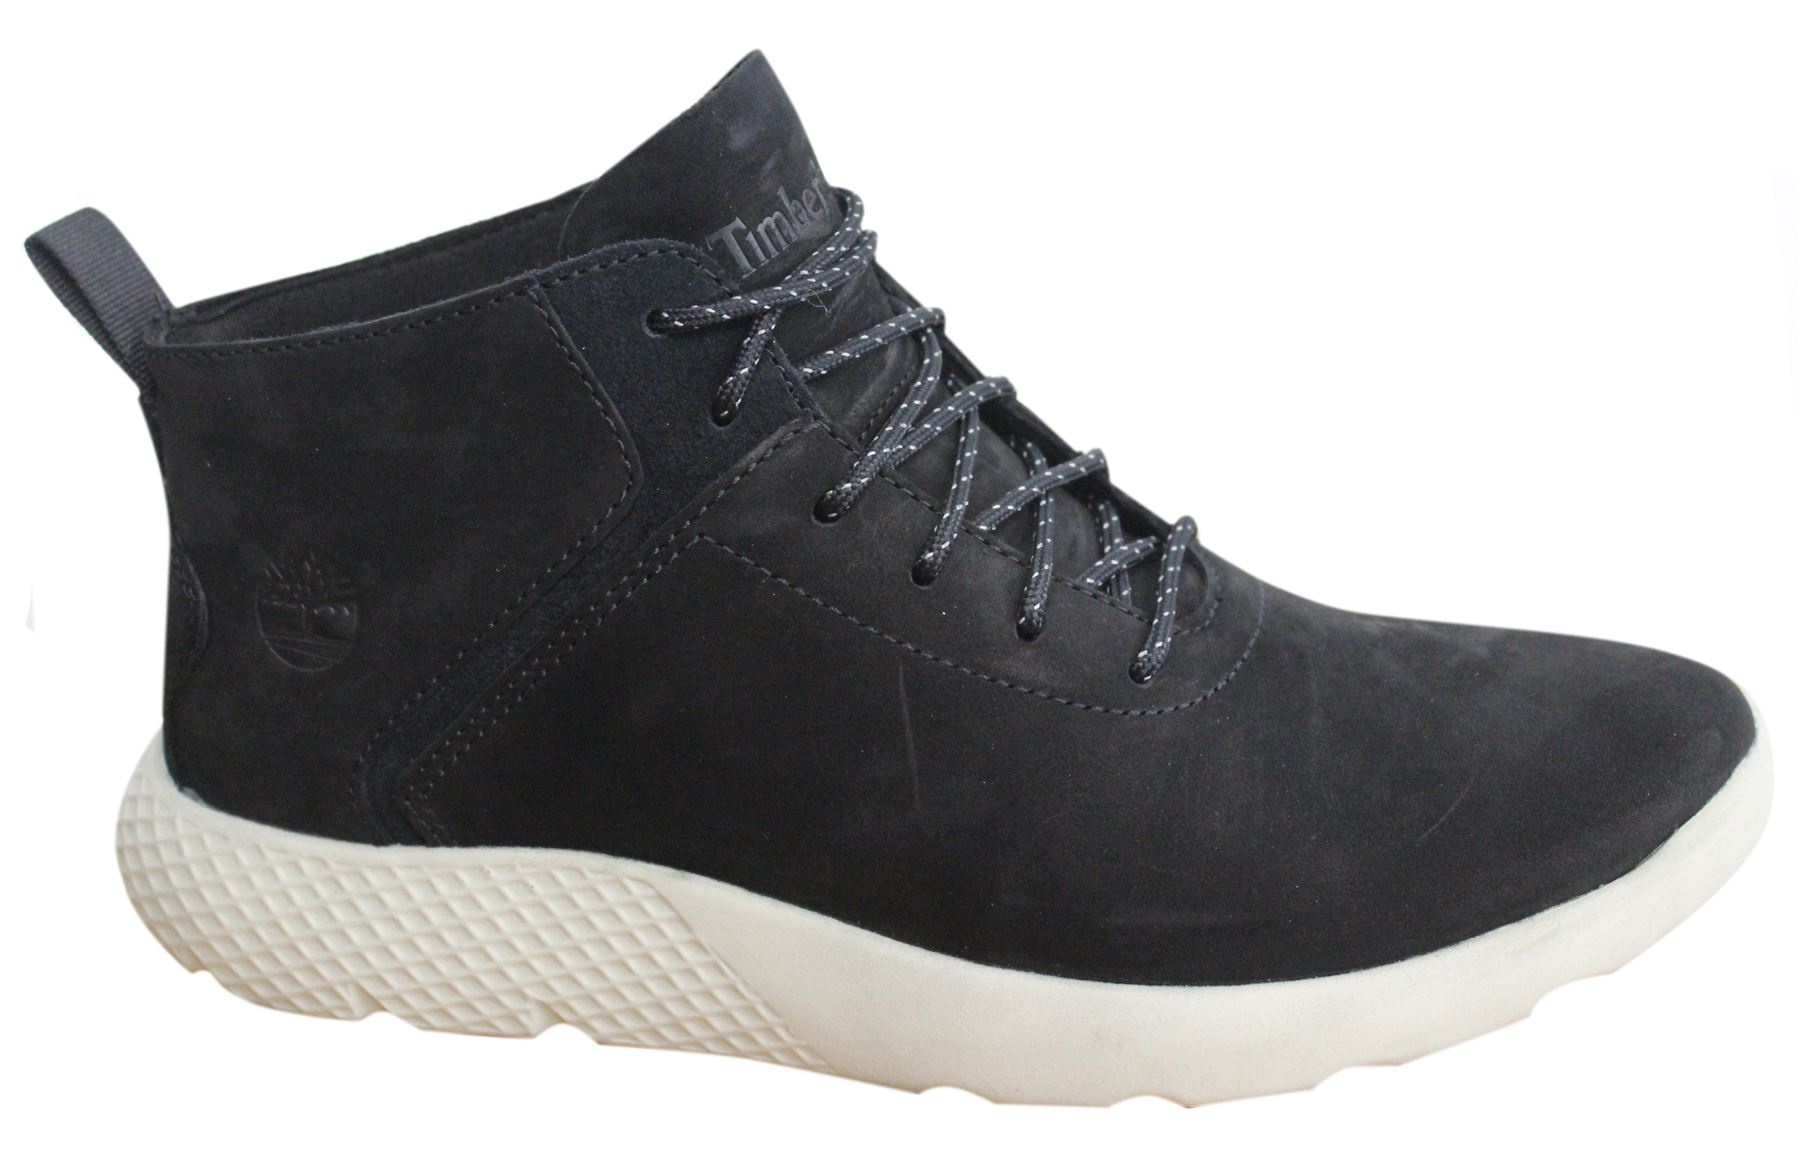 grote verkoop officiële winkel rijgen in Details about Timberland Flyroam Super Ox Lace Up Black Leather Suede  Chukka Shoes A1QA3 B34C